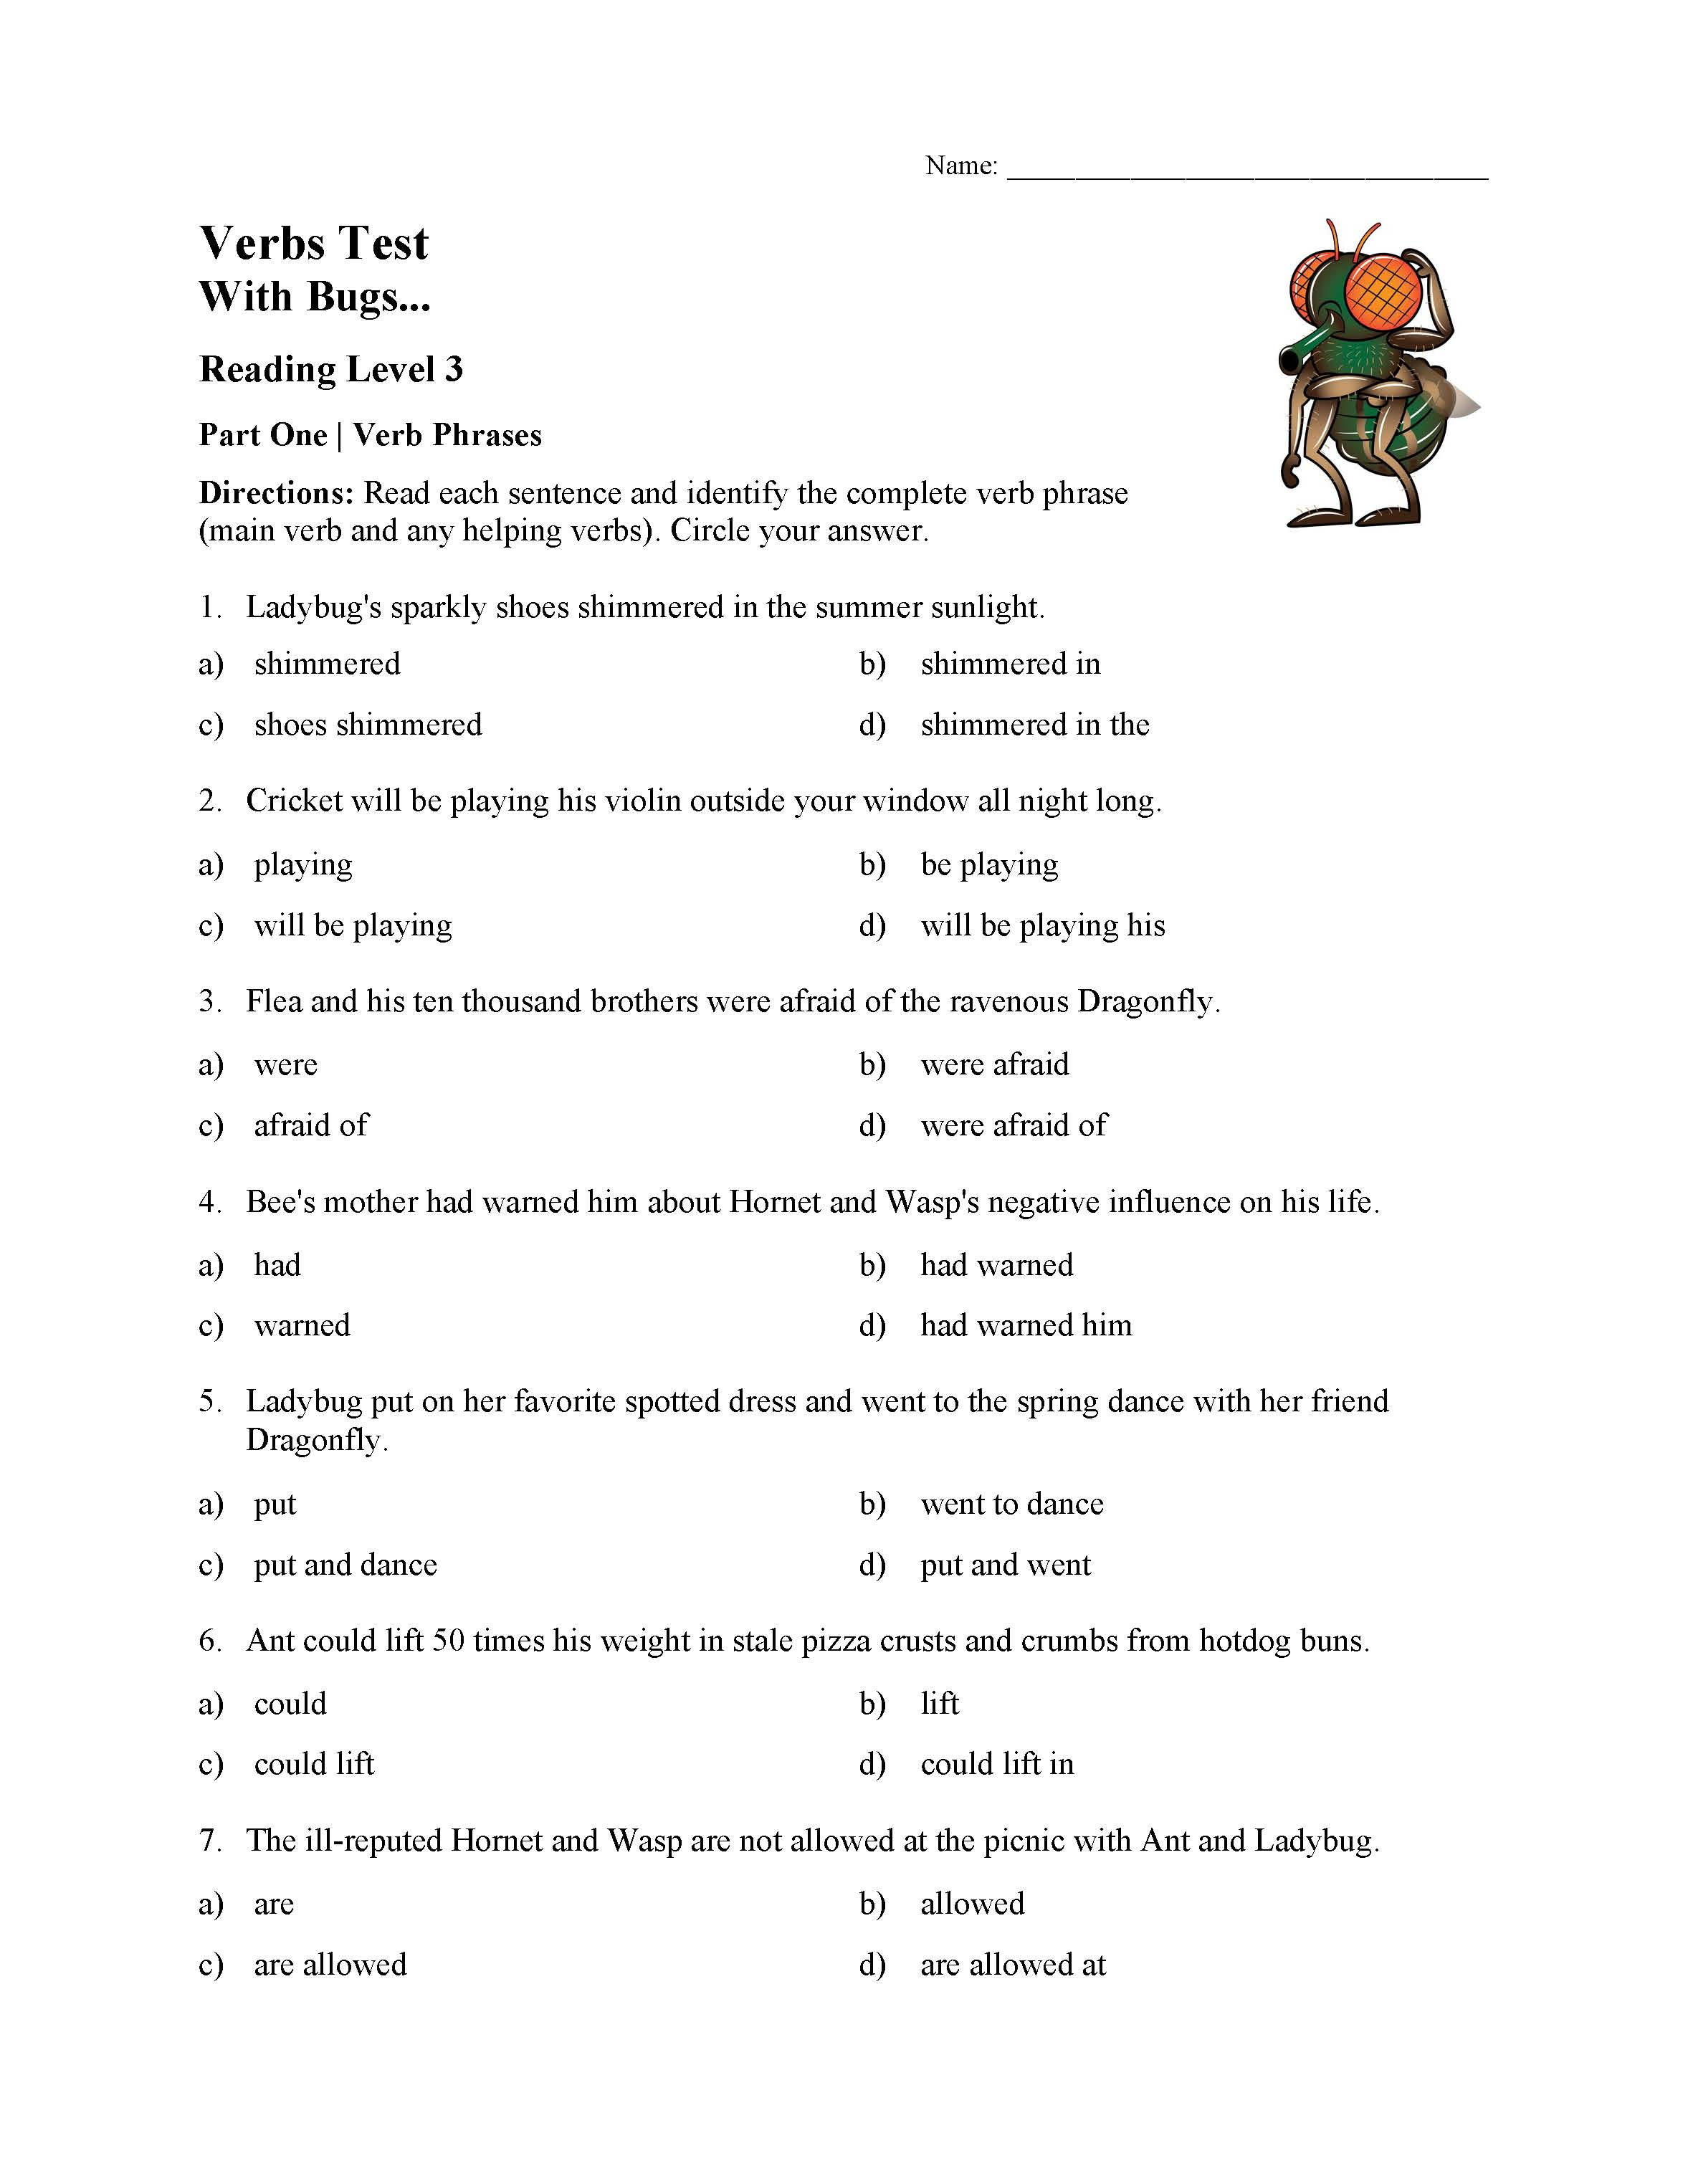 This is a preview image of the Verbs Test - With Bugs | Reading Level 3.